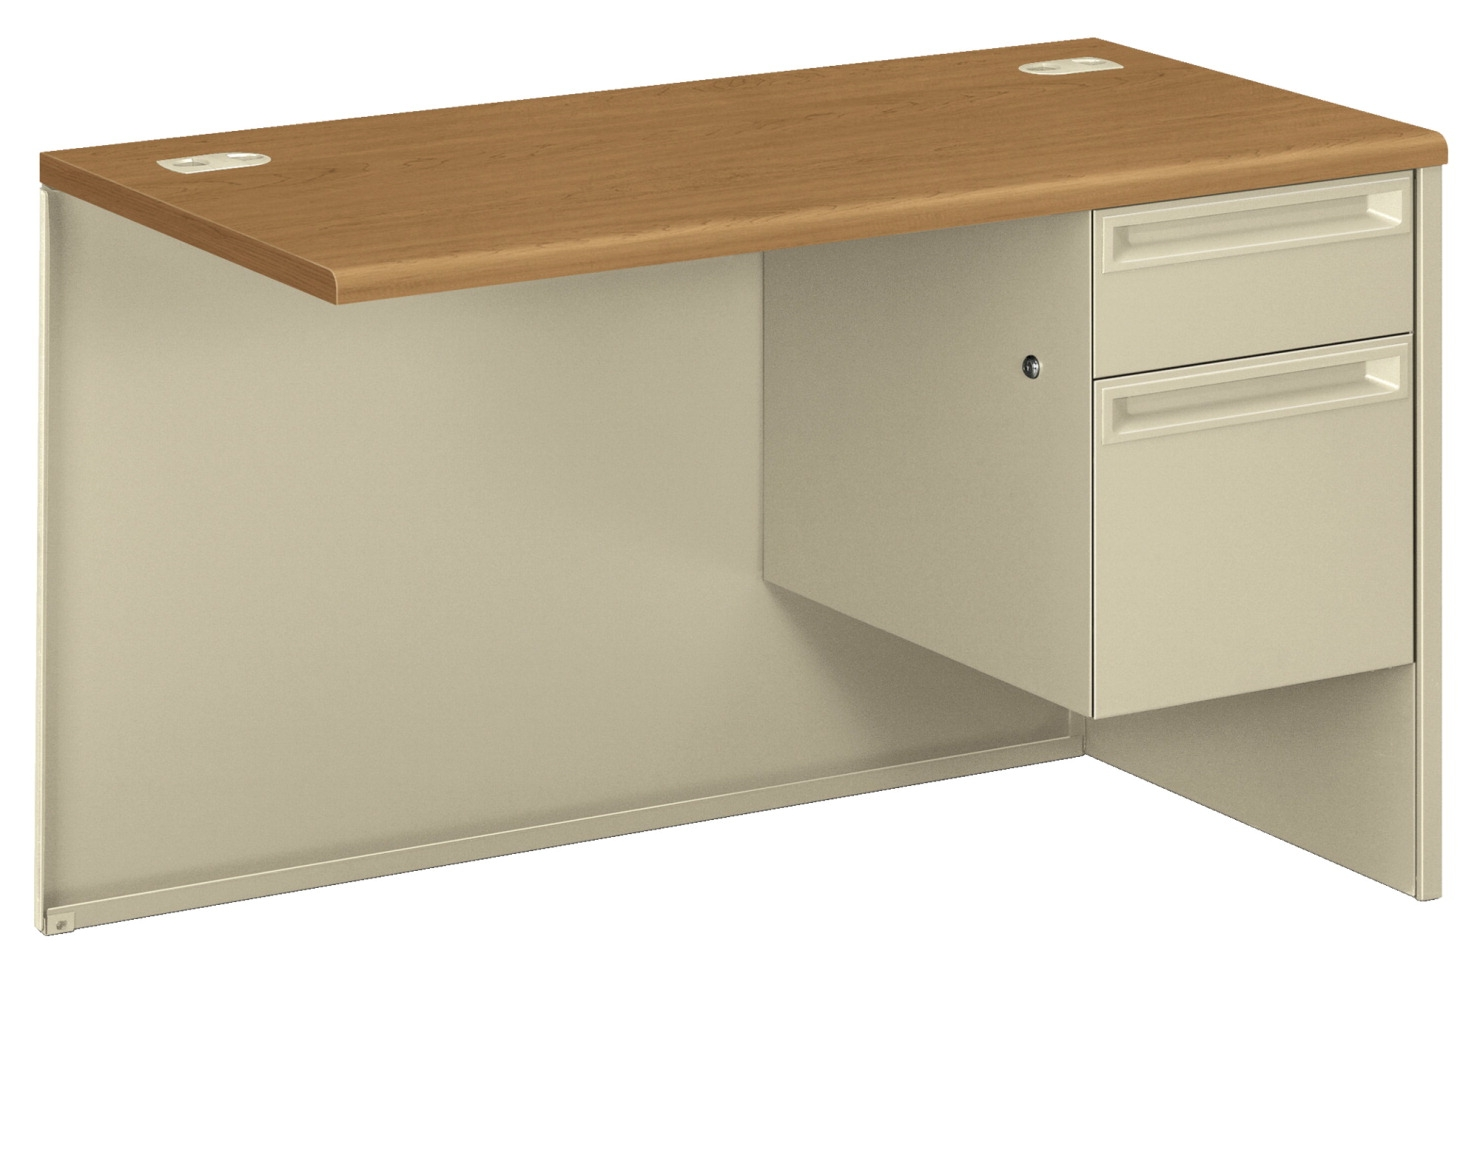 Hon 38000 Series Modular Desk; Right Pedestal Return W/lock; 48 X 24 X 29-1/2 In; Harvest/putty - 1504647 - Facilities Management Specialty Lockers Cellphone Lockers Custom Signage Locker Locks 1504647